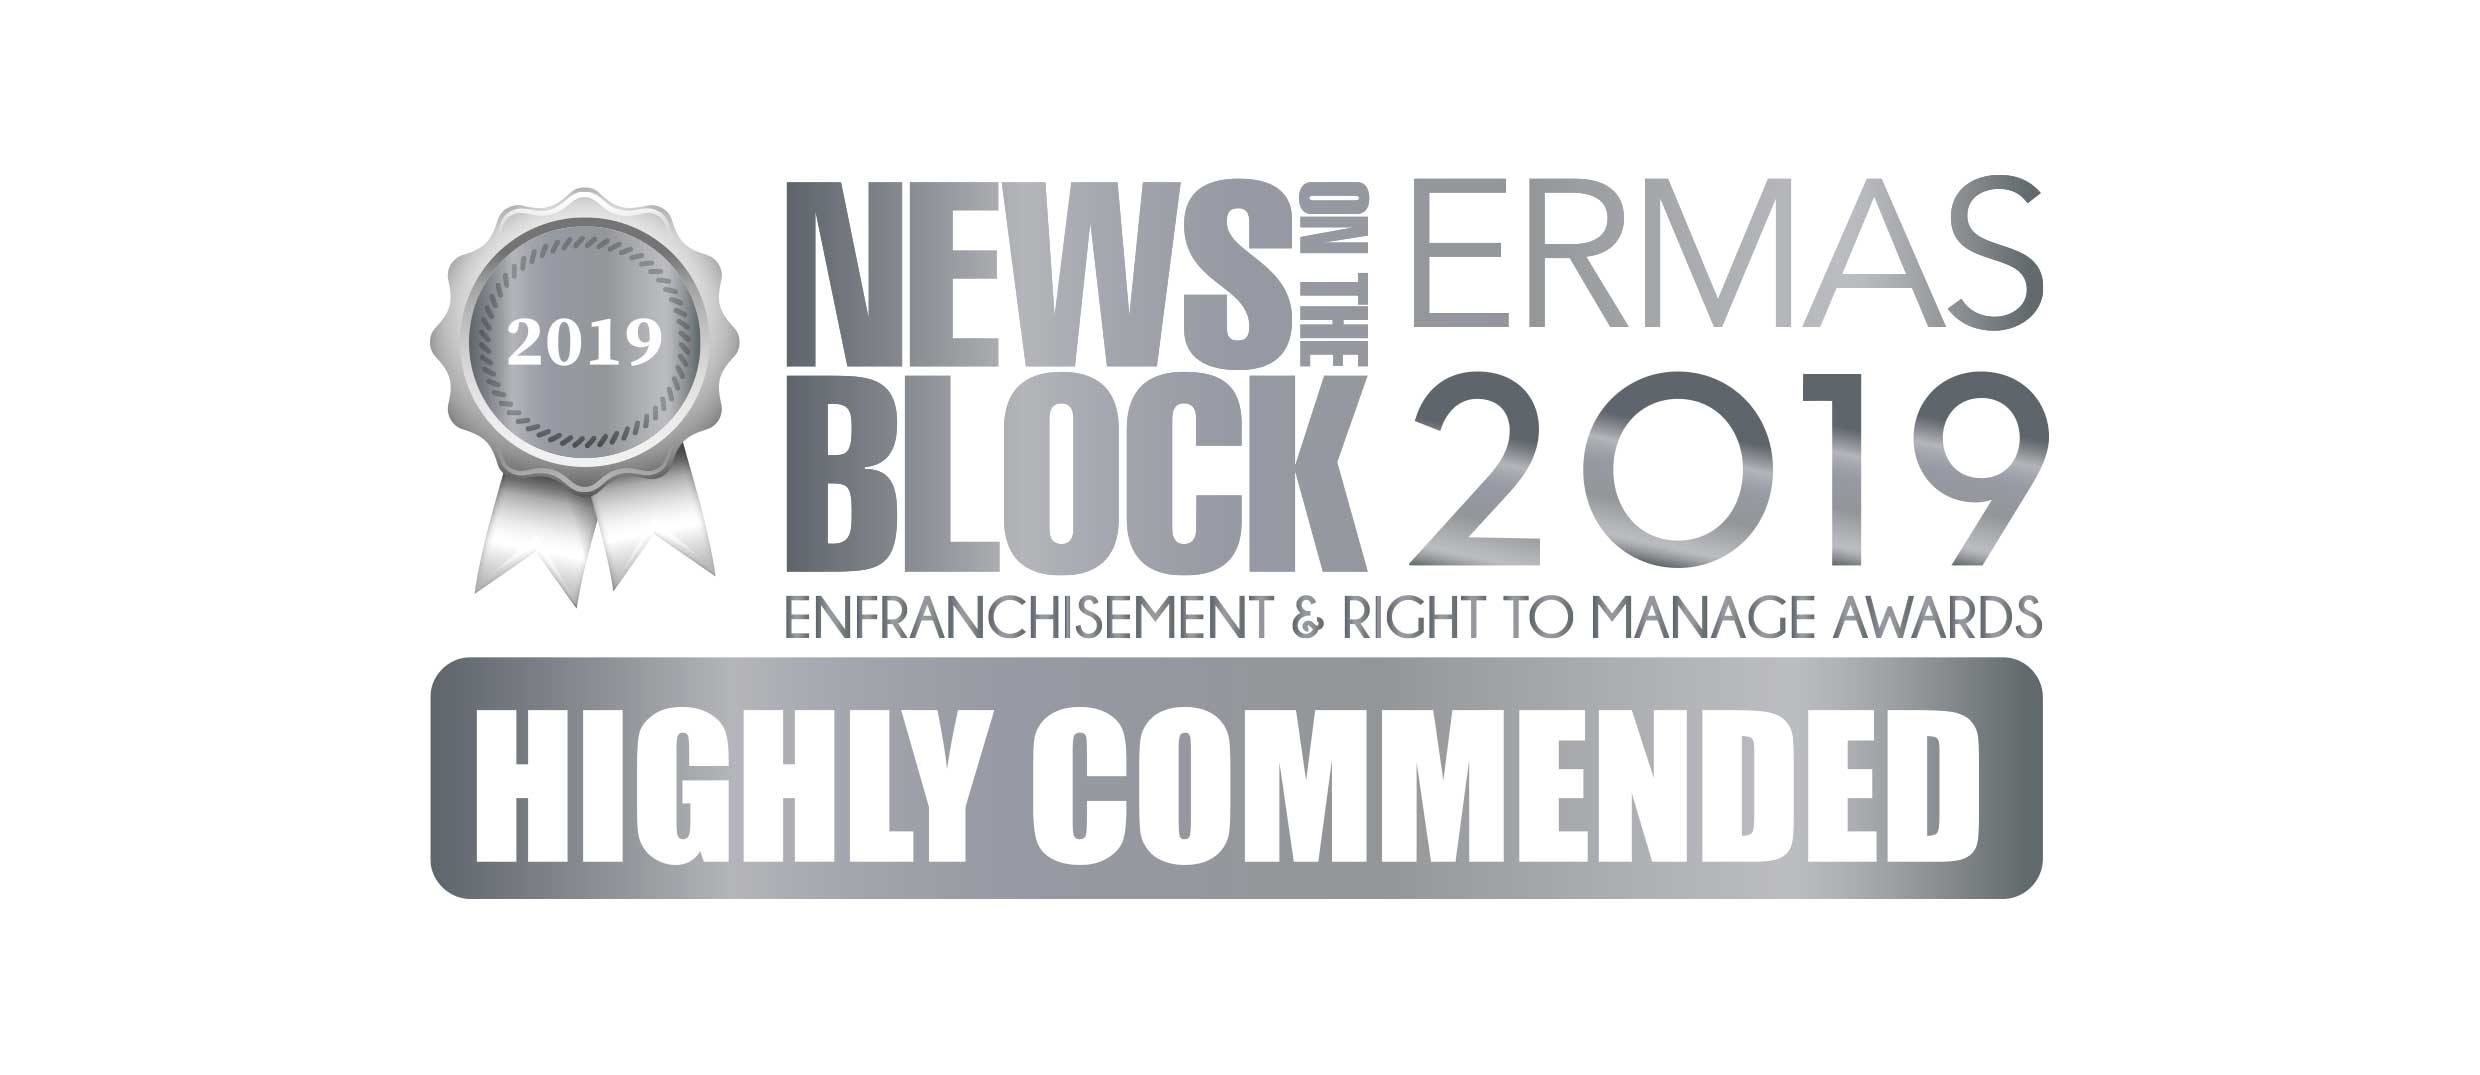 Forsters highly commended at the Enfranchisement and Right to Manage Awards